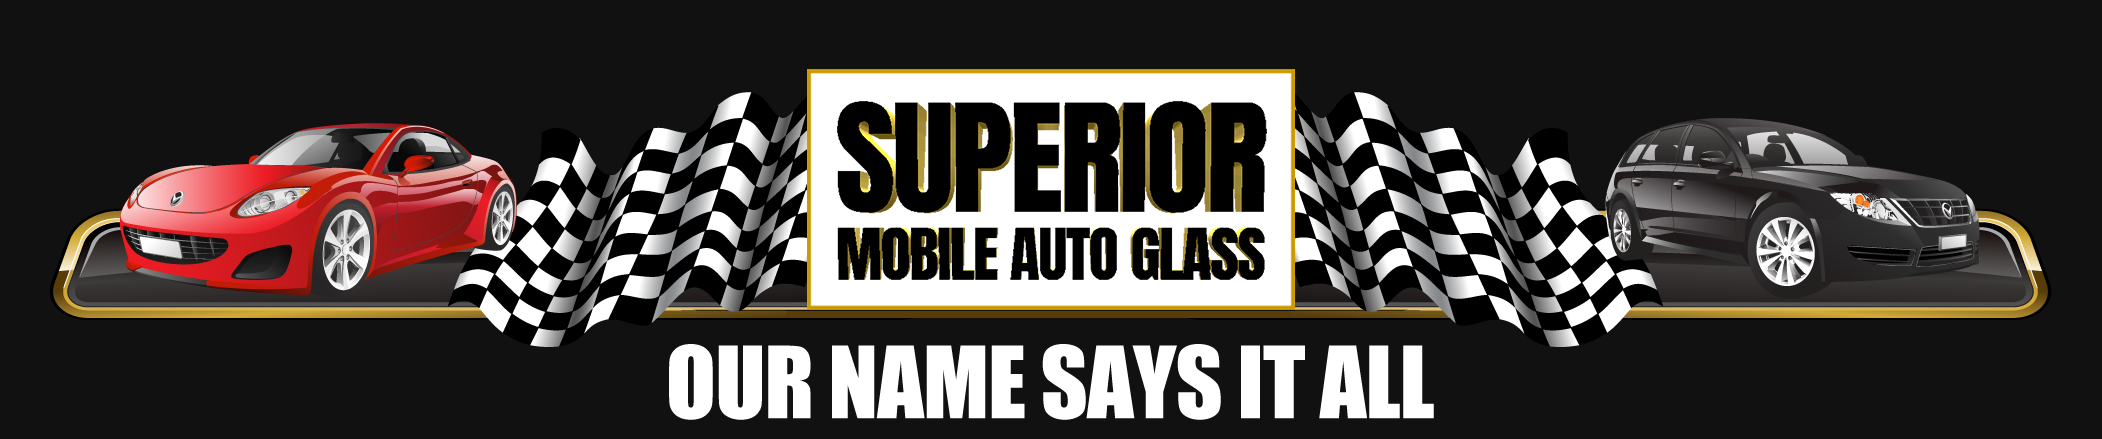 Auto Glass Quote Windshield Repair  Mobile Glass Replacement  Superior Center